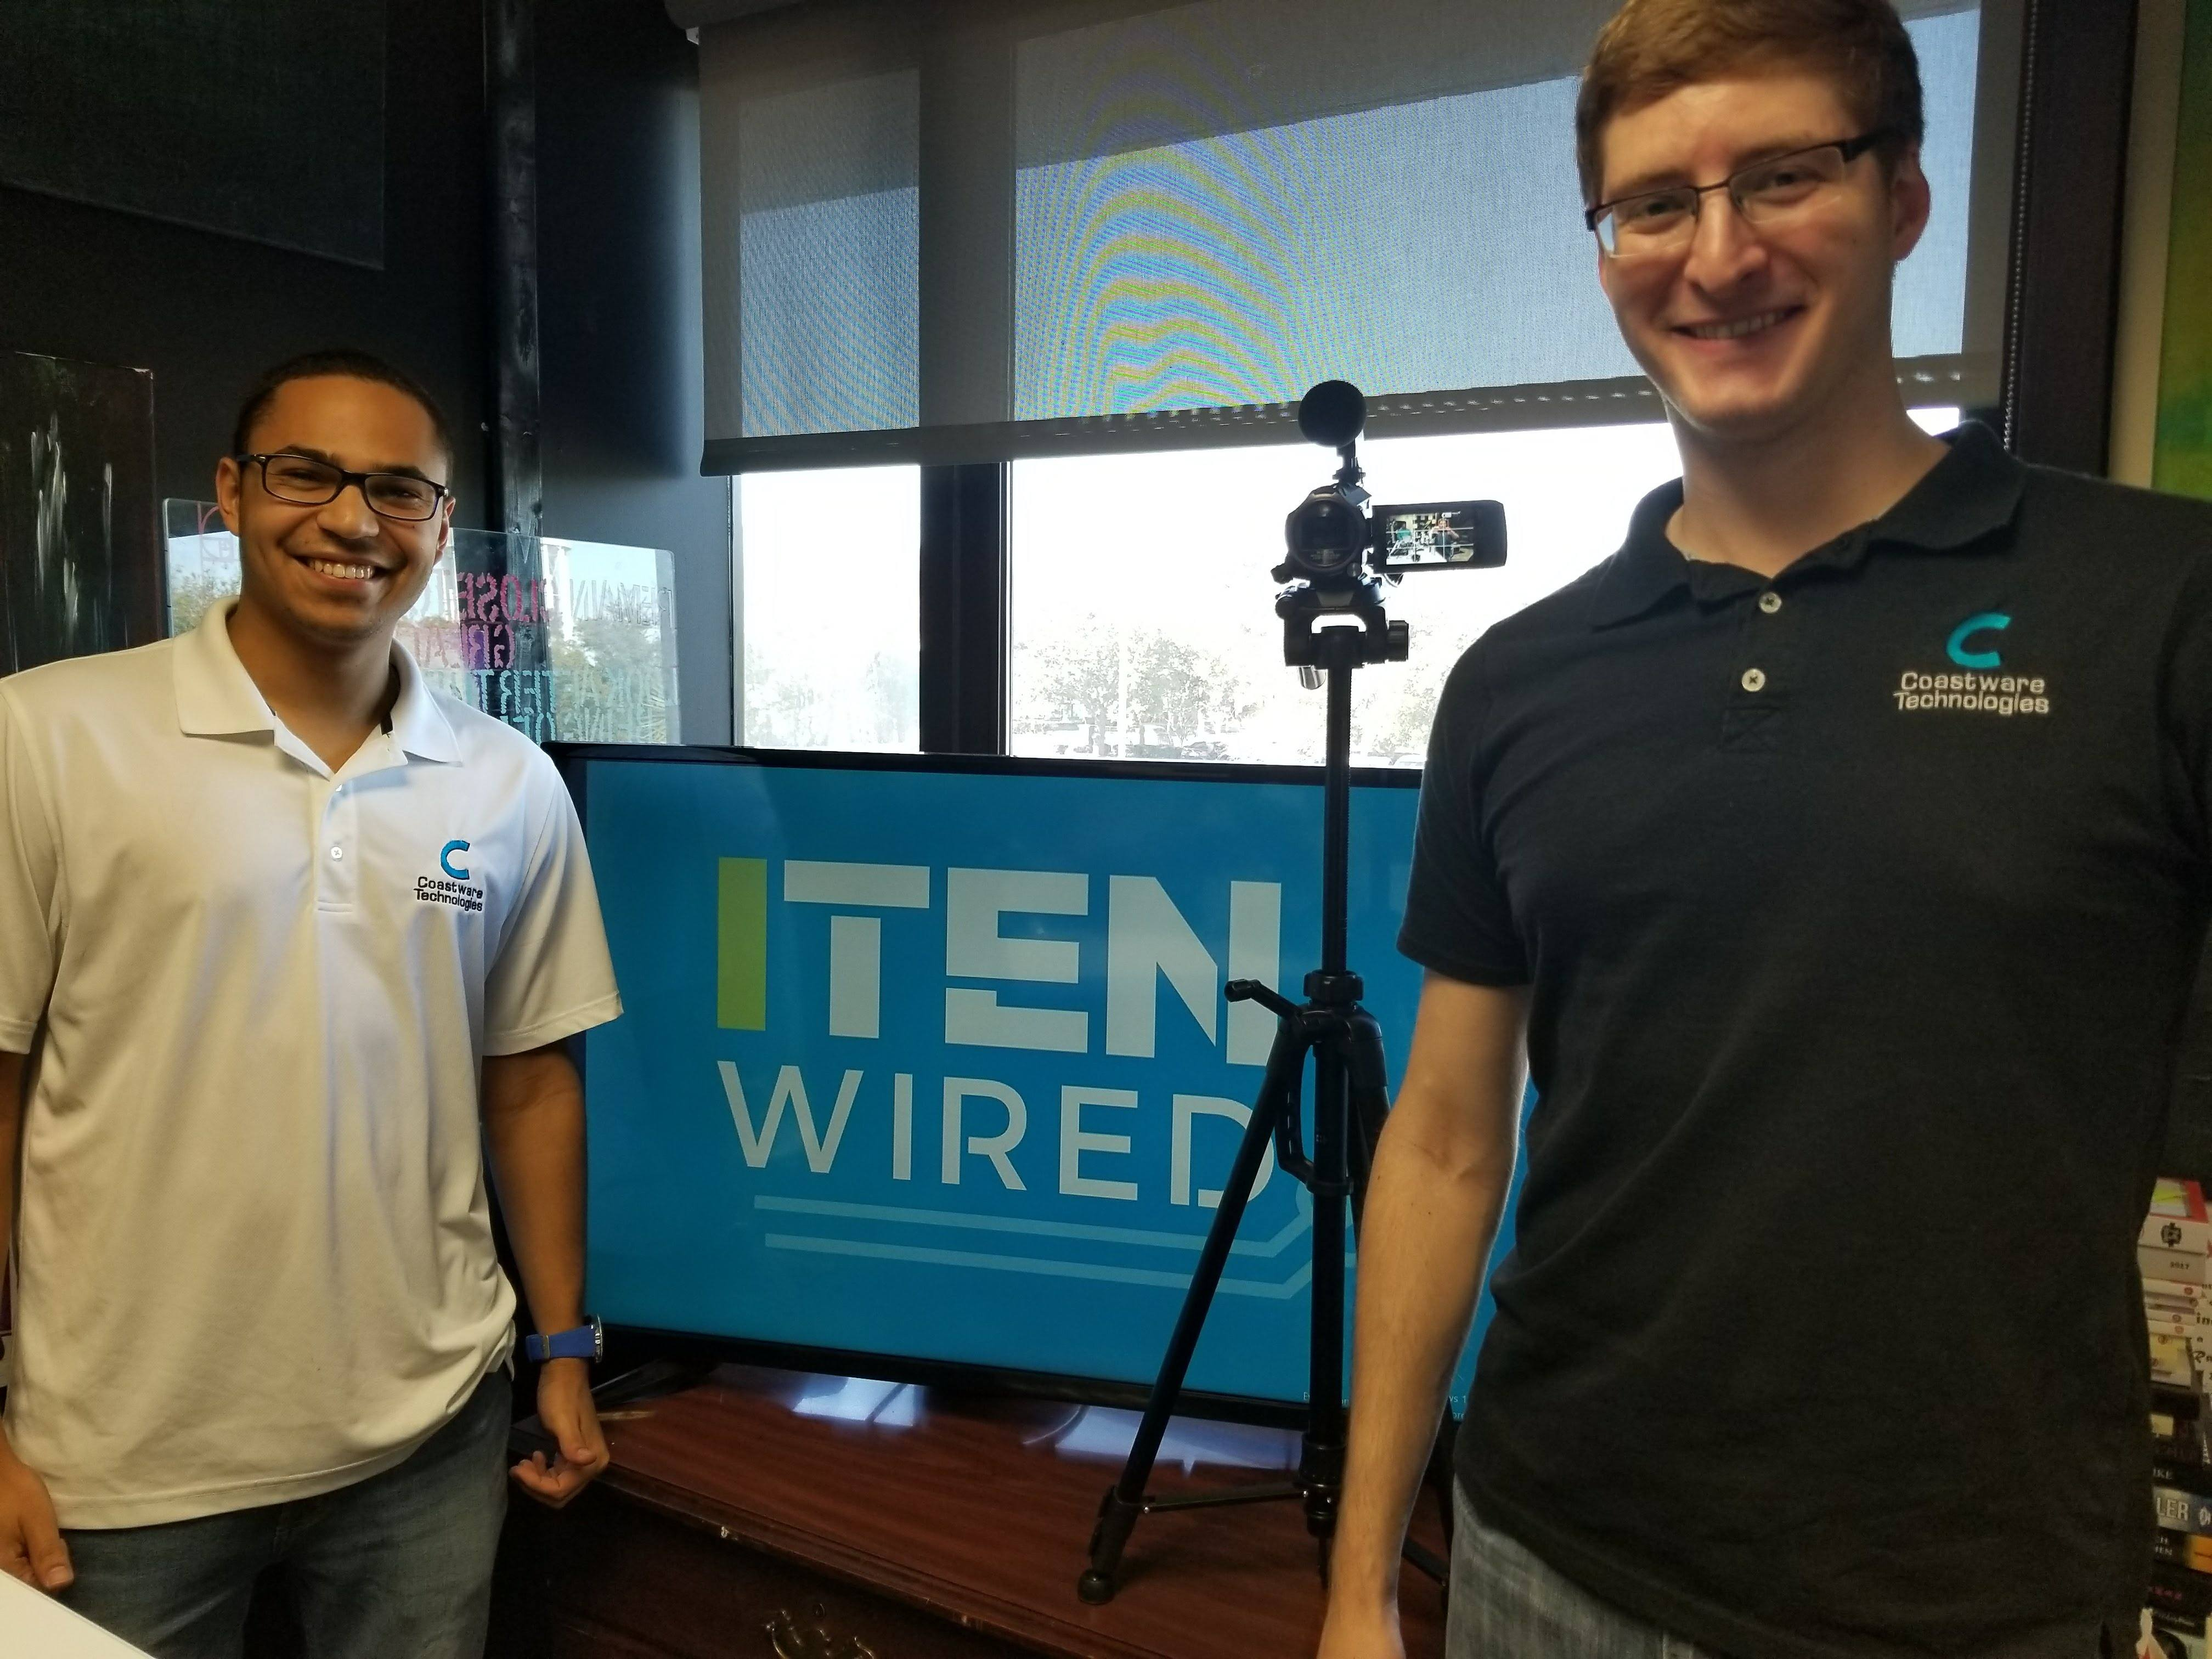 ITEN WIRED Radio: 2018 Season is Kicking Off with Ben and Anthony from Coastware Technologies